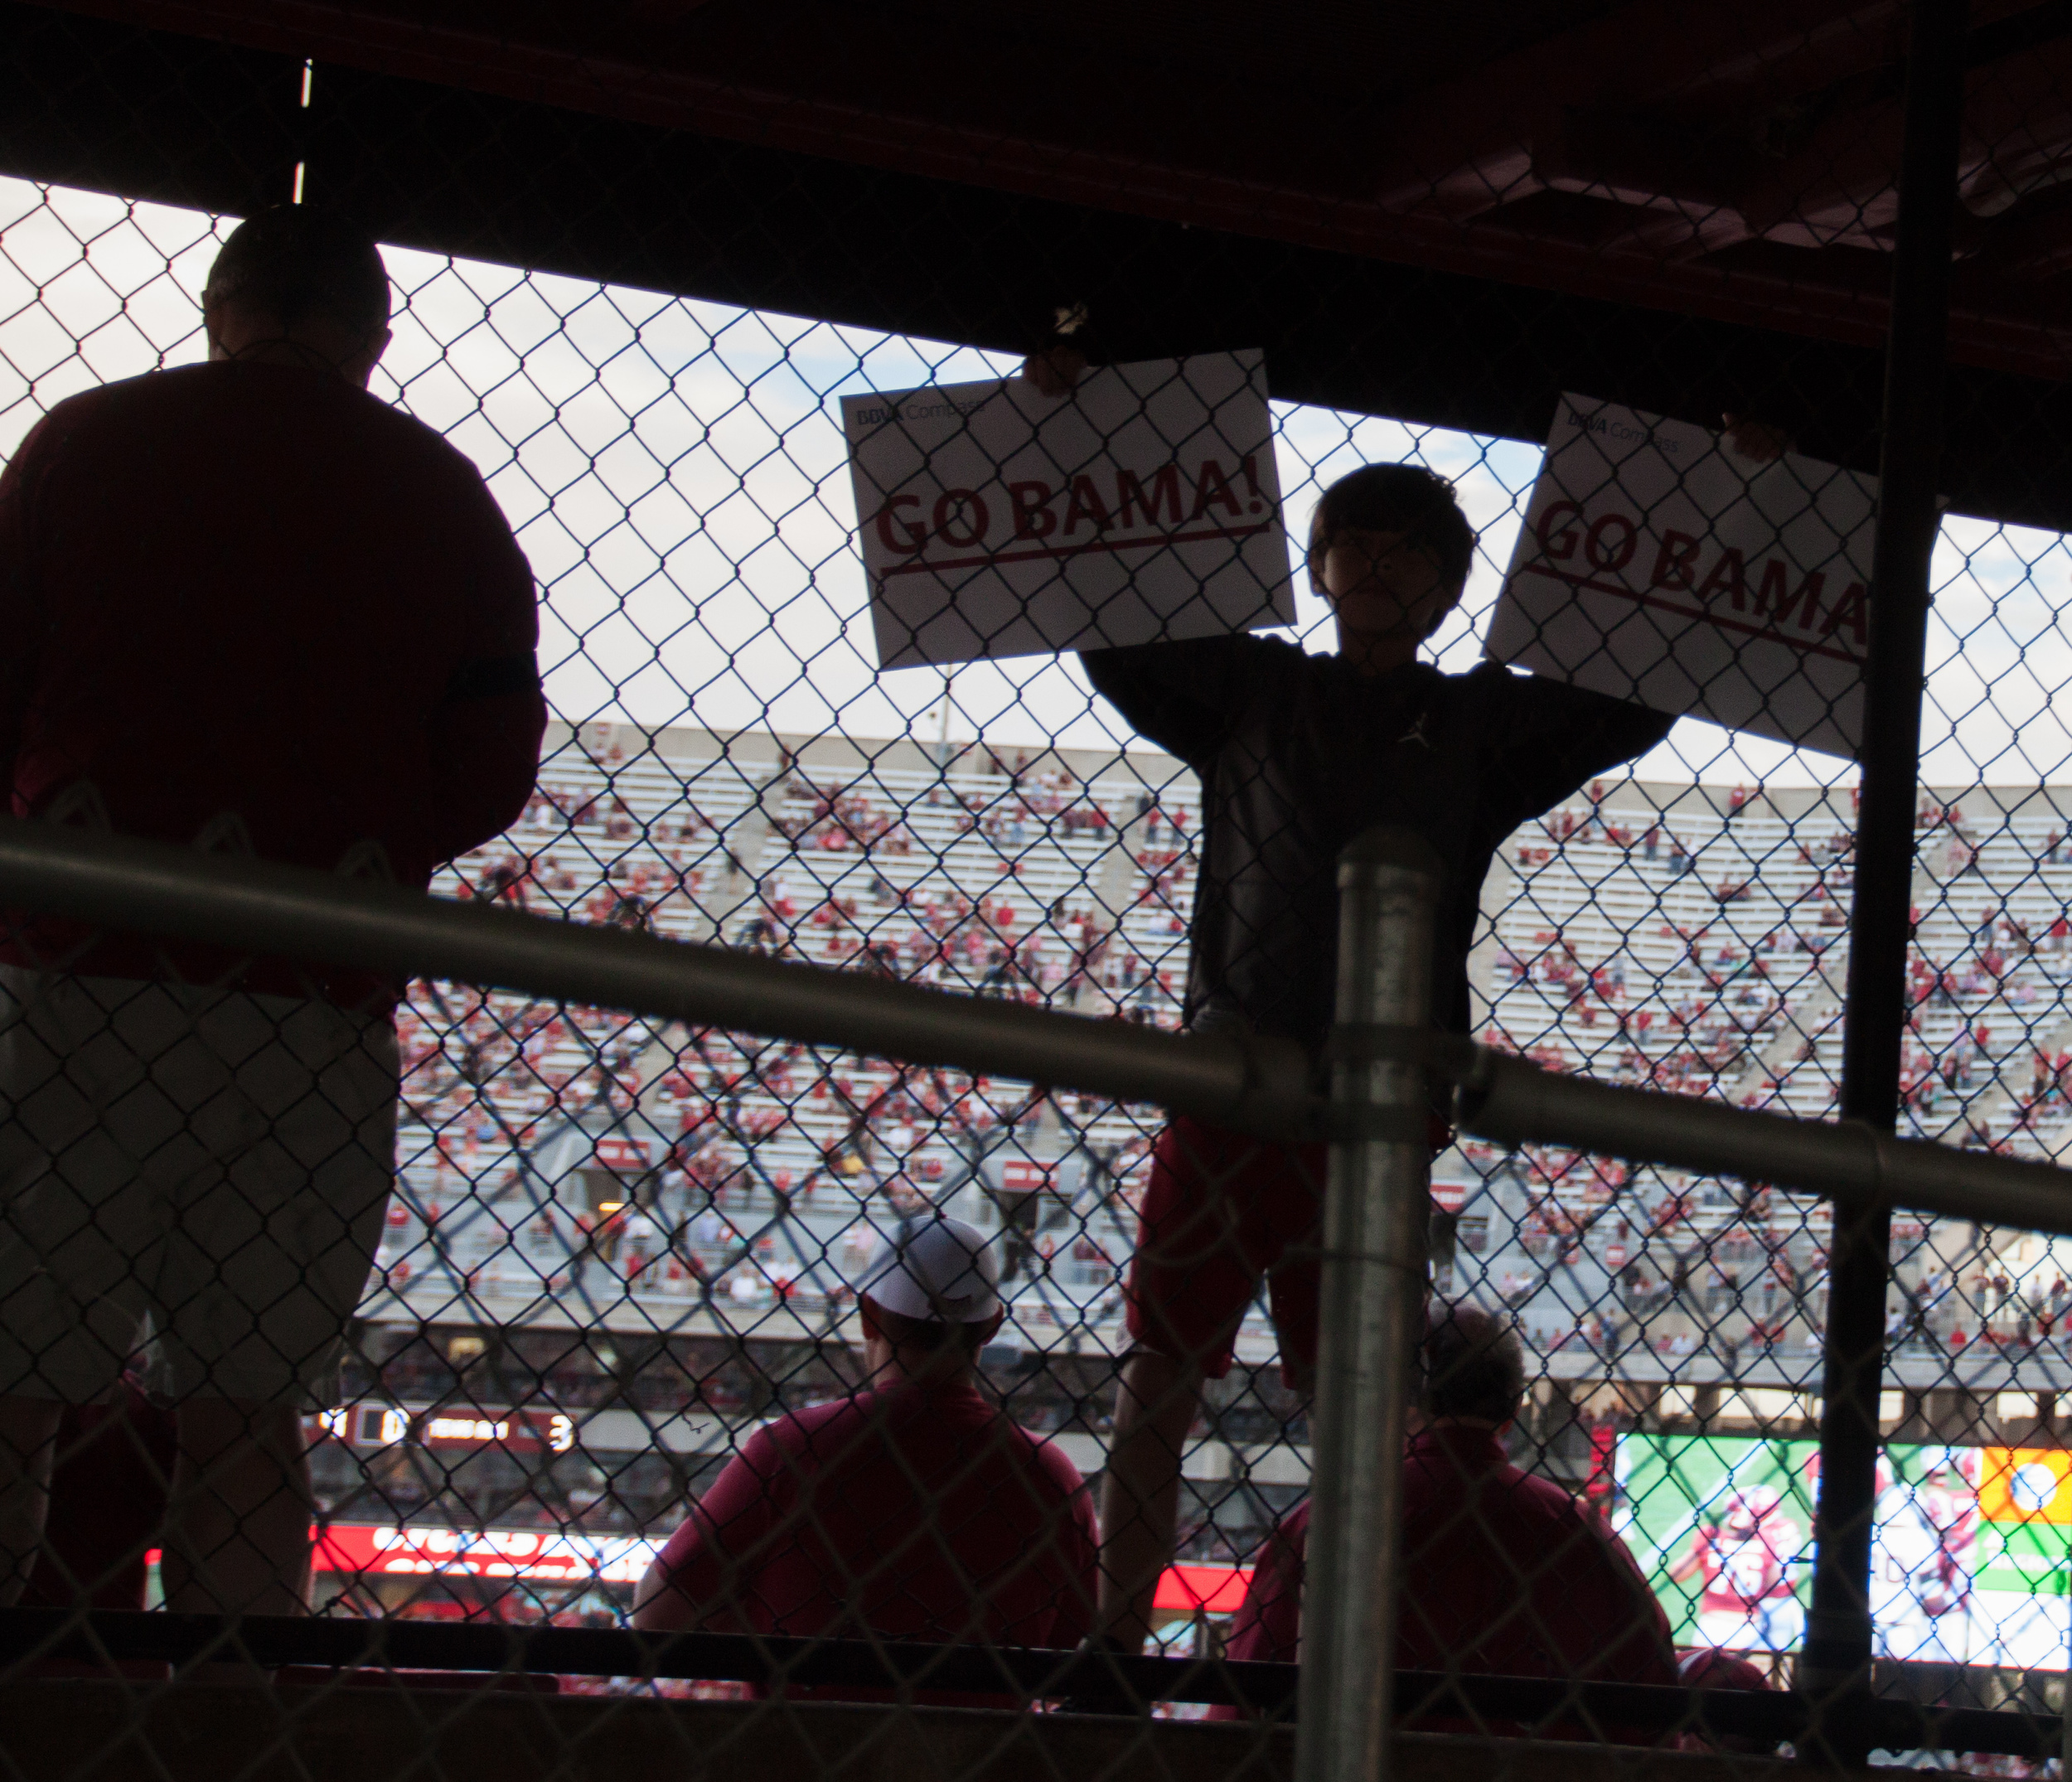 """While leaving the stadium I caught this fan holding up """"GO BAMA!"""" signs. Needless to say that phrase """"Roll Tide!"""" was said a few times."""